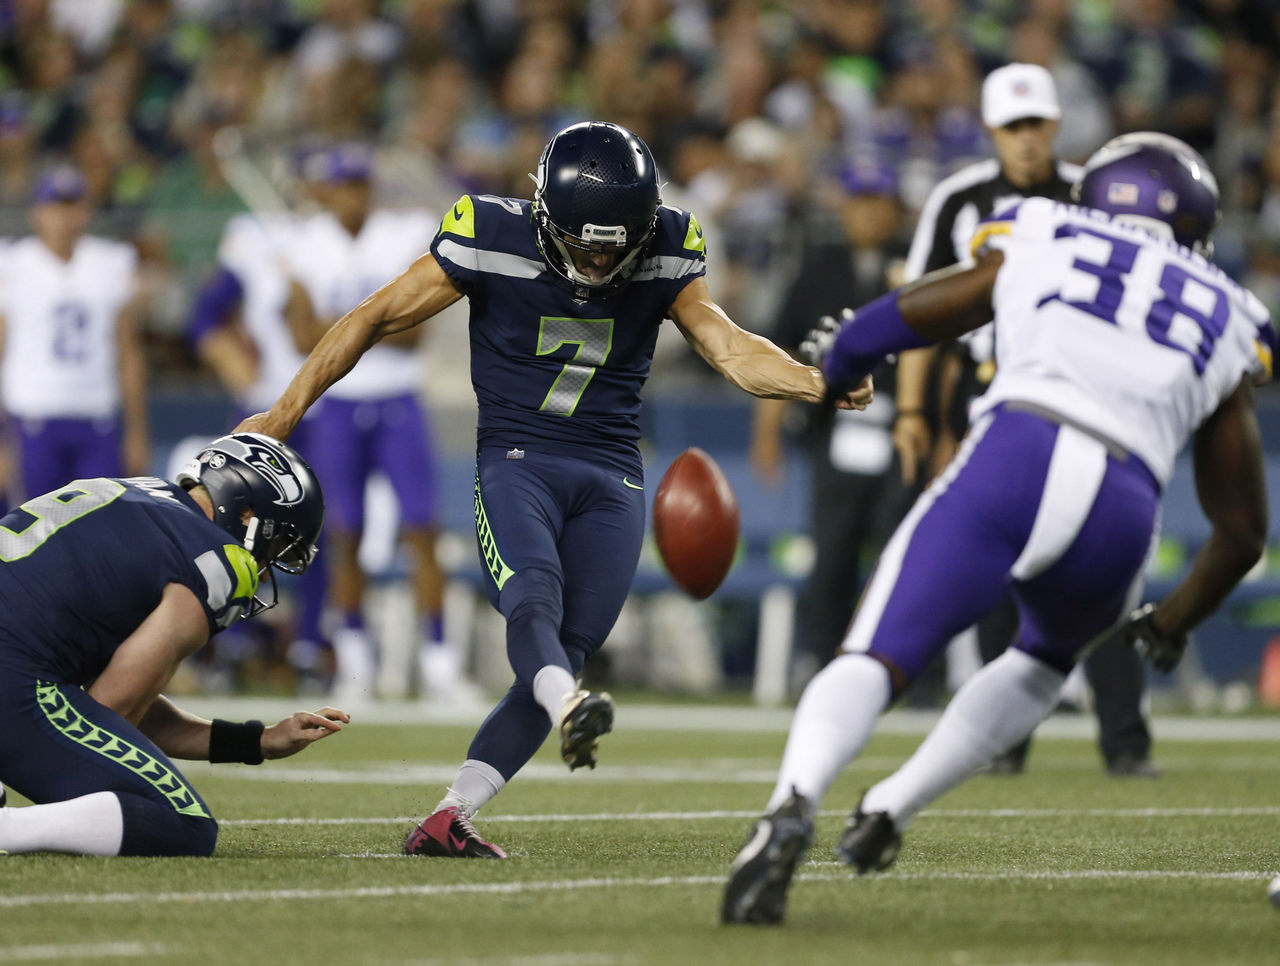 Cropped_2017-08-19t060435z_334818105_nocid_rtrmadp_3_nfl-minnesota-vikings-at-seattle-seahawks